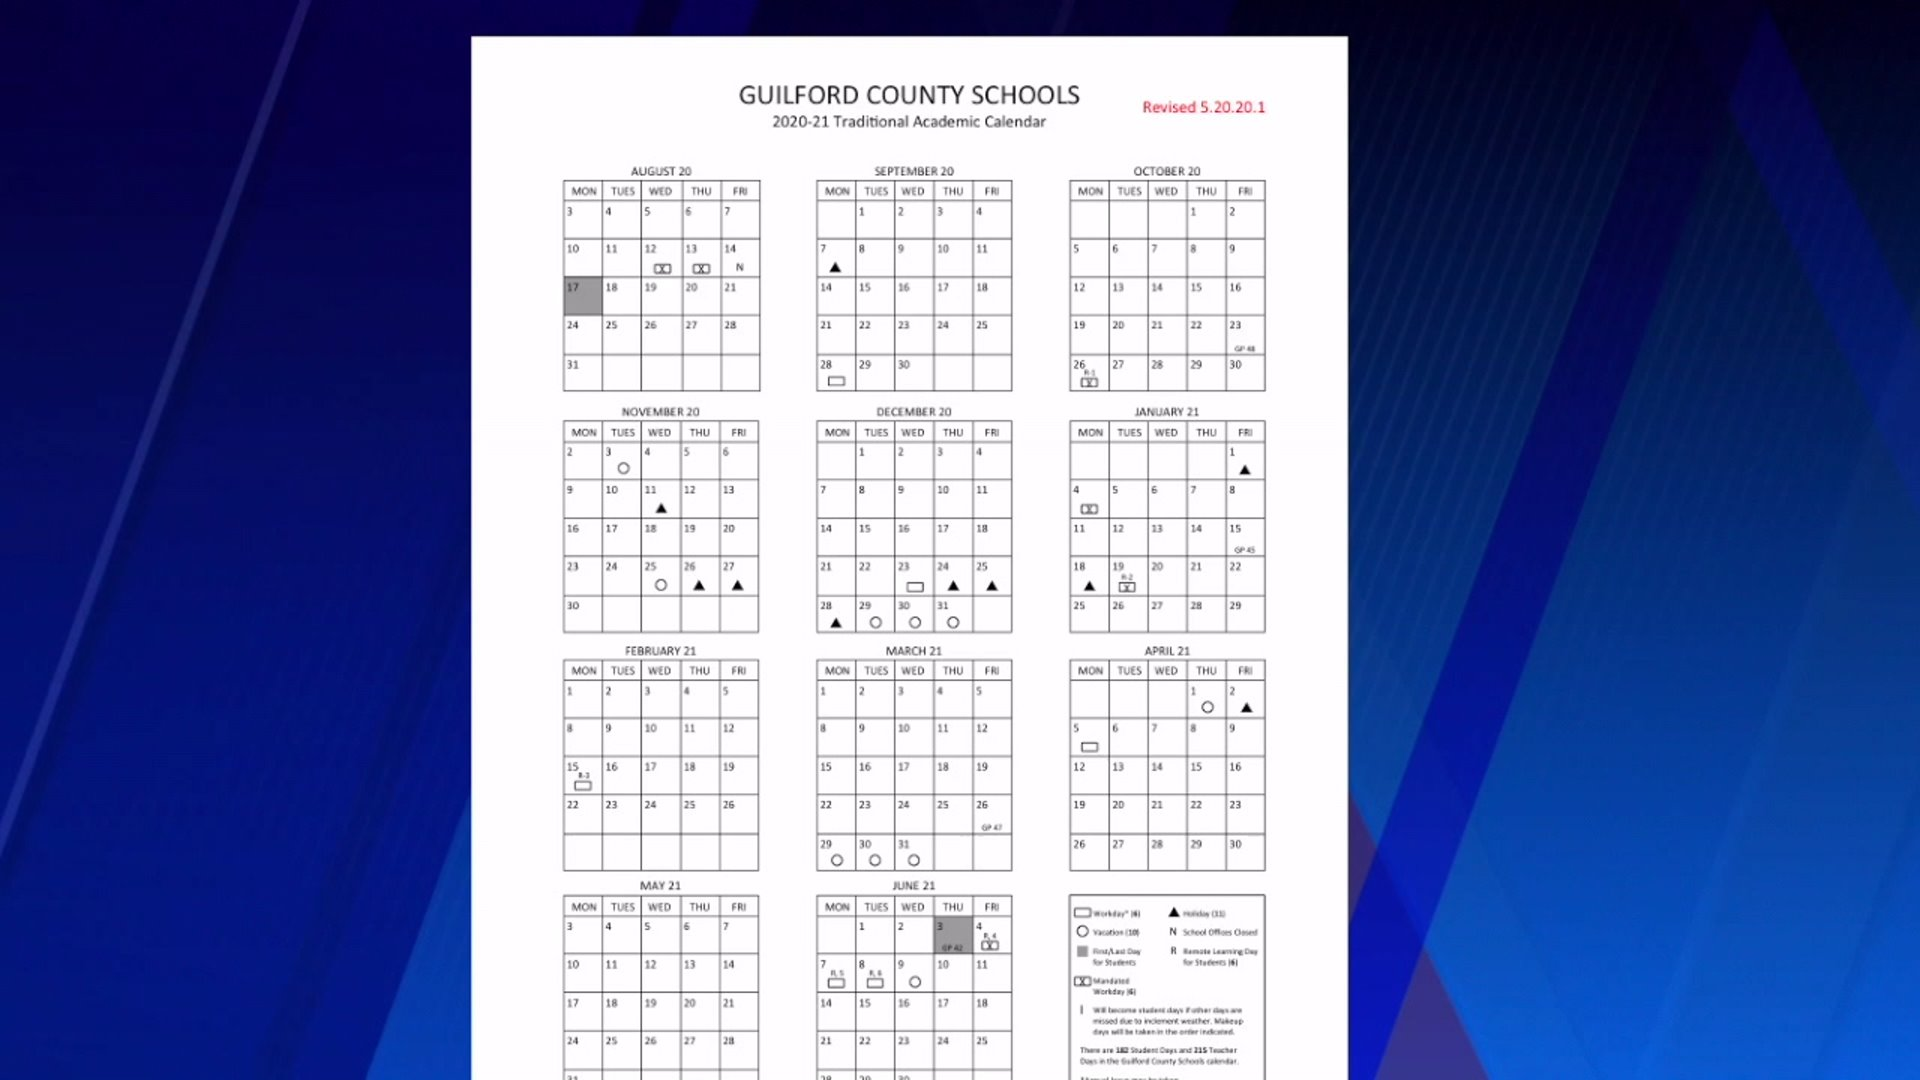 Guilford County Schools Calendar 2022.Parents Have Mixed Feelings About Proposed Guilford County Schools Calendar Myfox8 Com